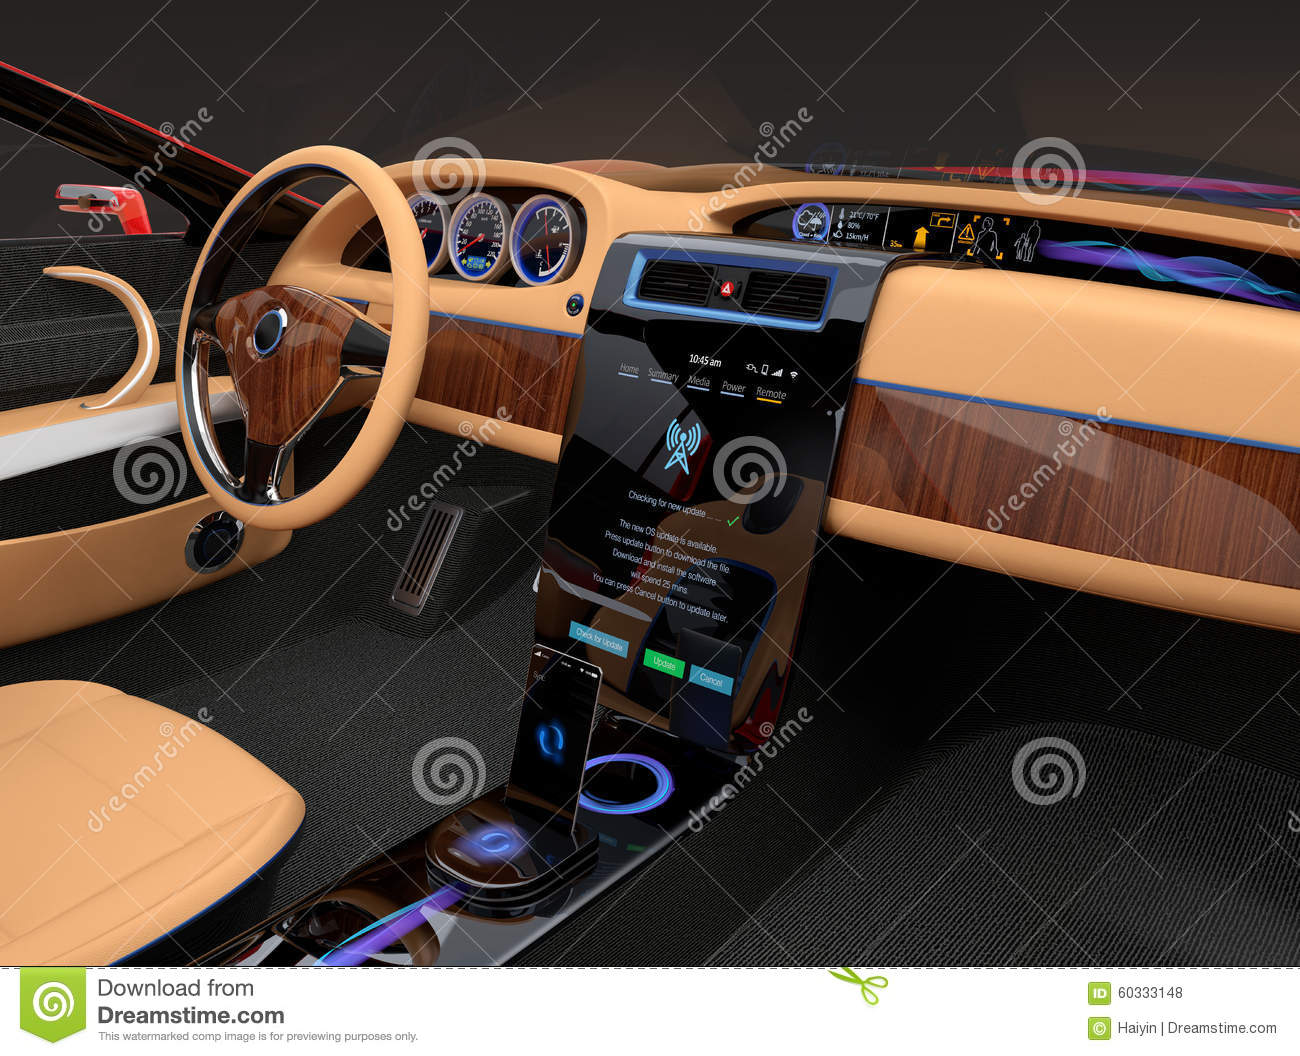 Stylish electric car interior with luxury wood pattern for Dash designs car interior shop